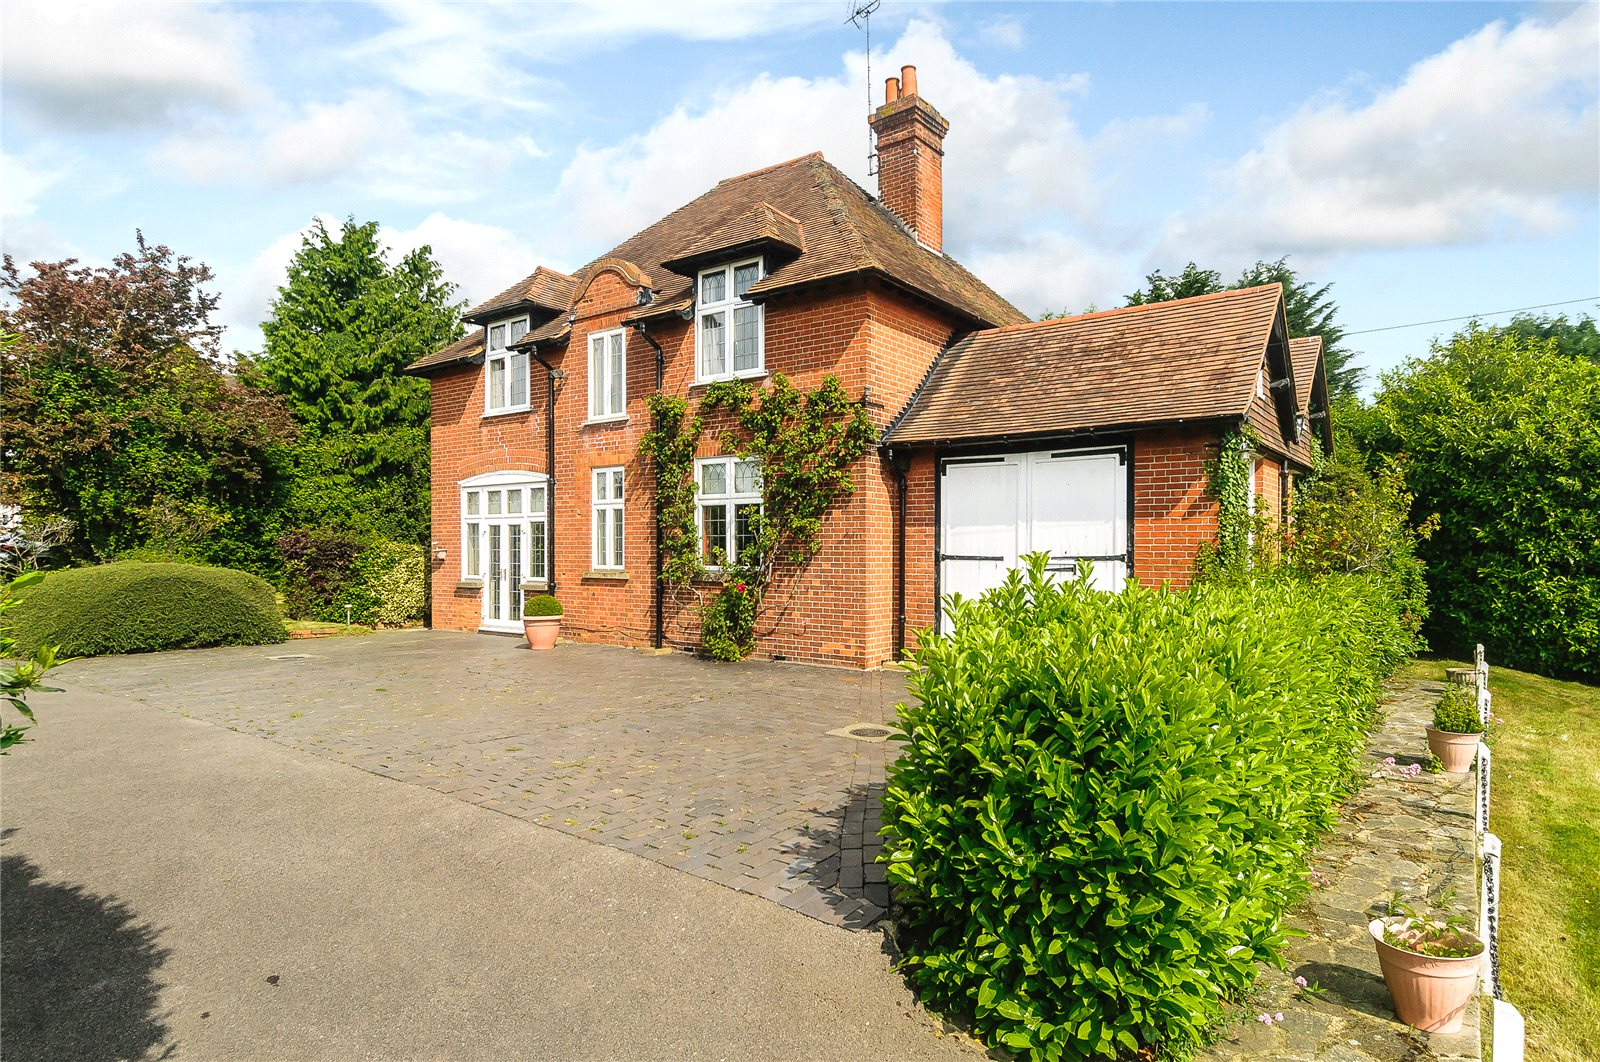 Maison unifamiliale pour l Vente à Forest Road, Warfield, Berkshire, RG42 Warfield, Angleterre